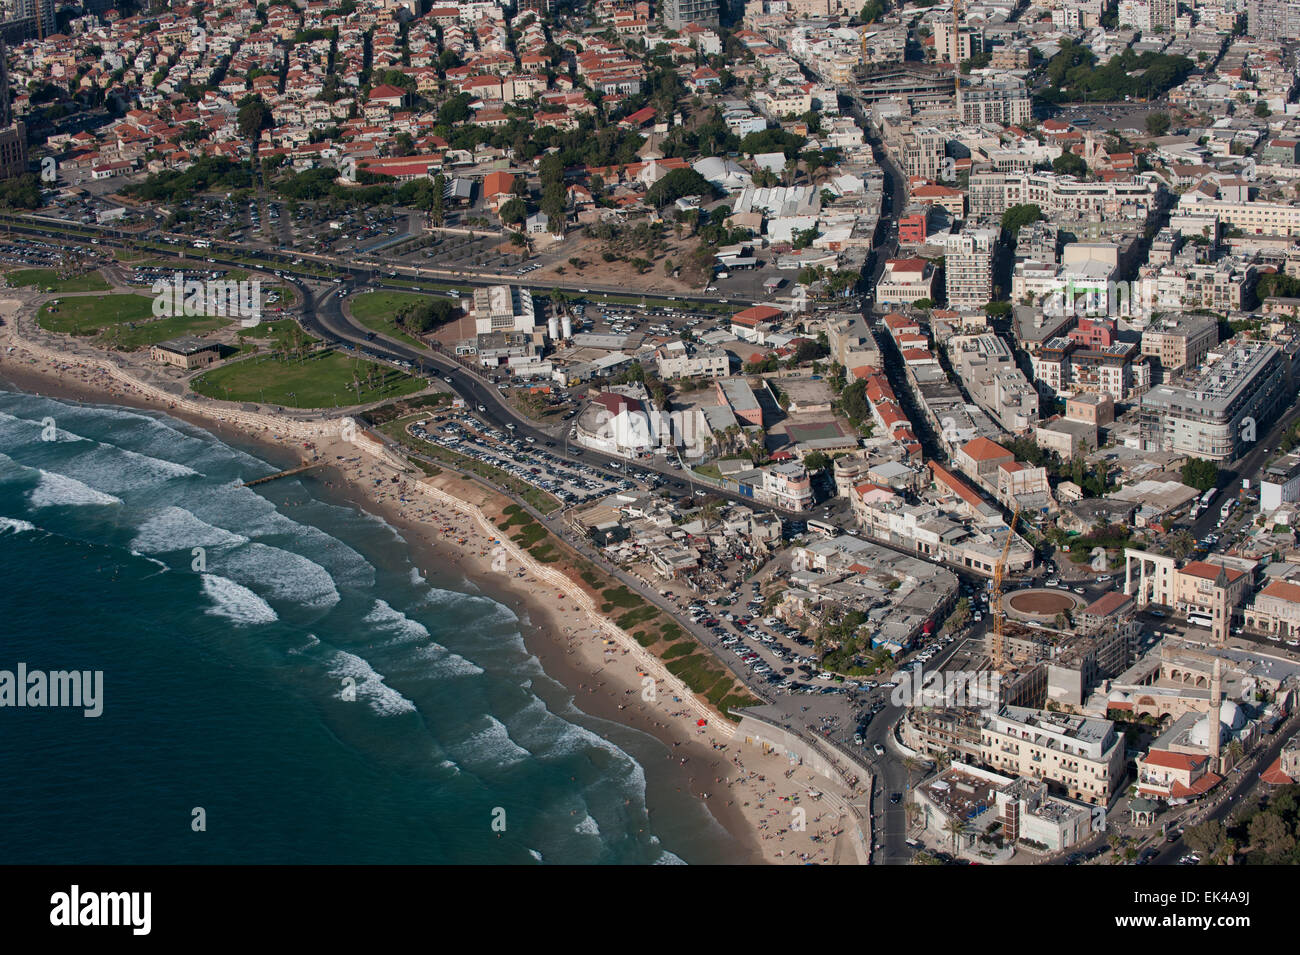 Aerial Photography of Old Jaffa, Israel - Stock Image